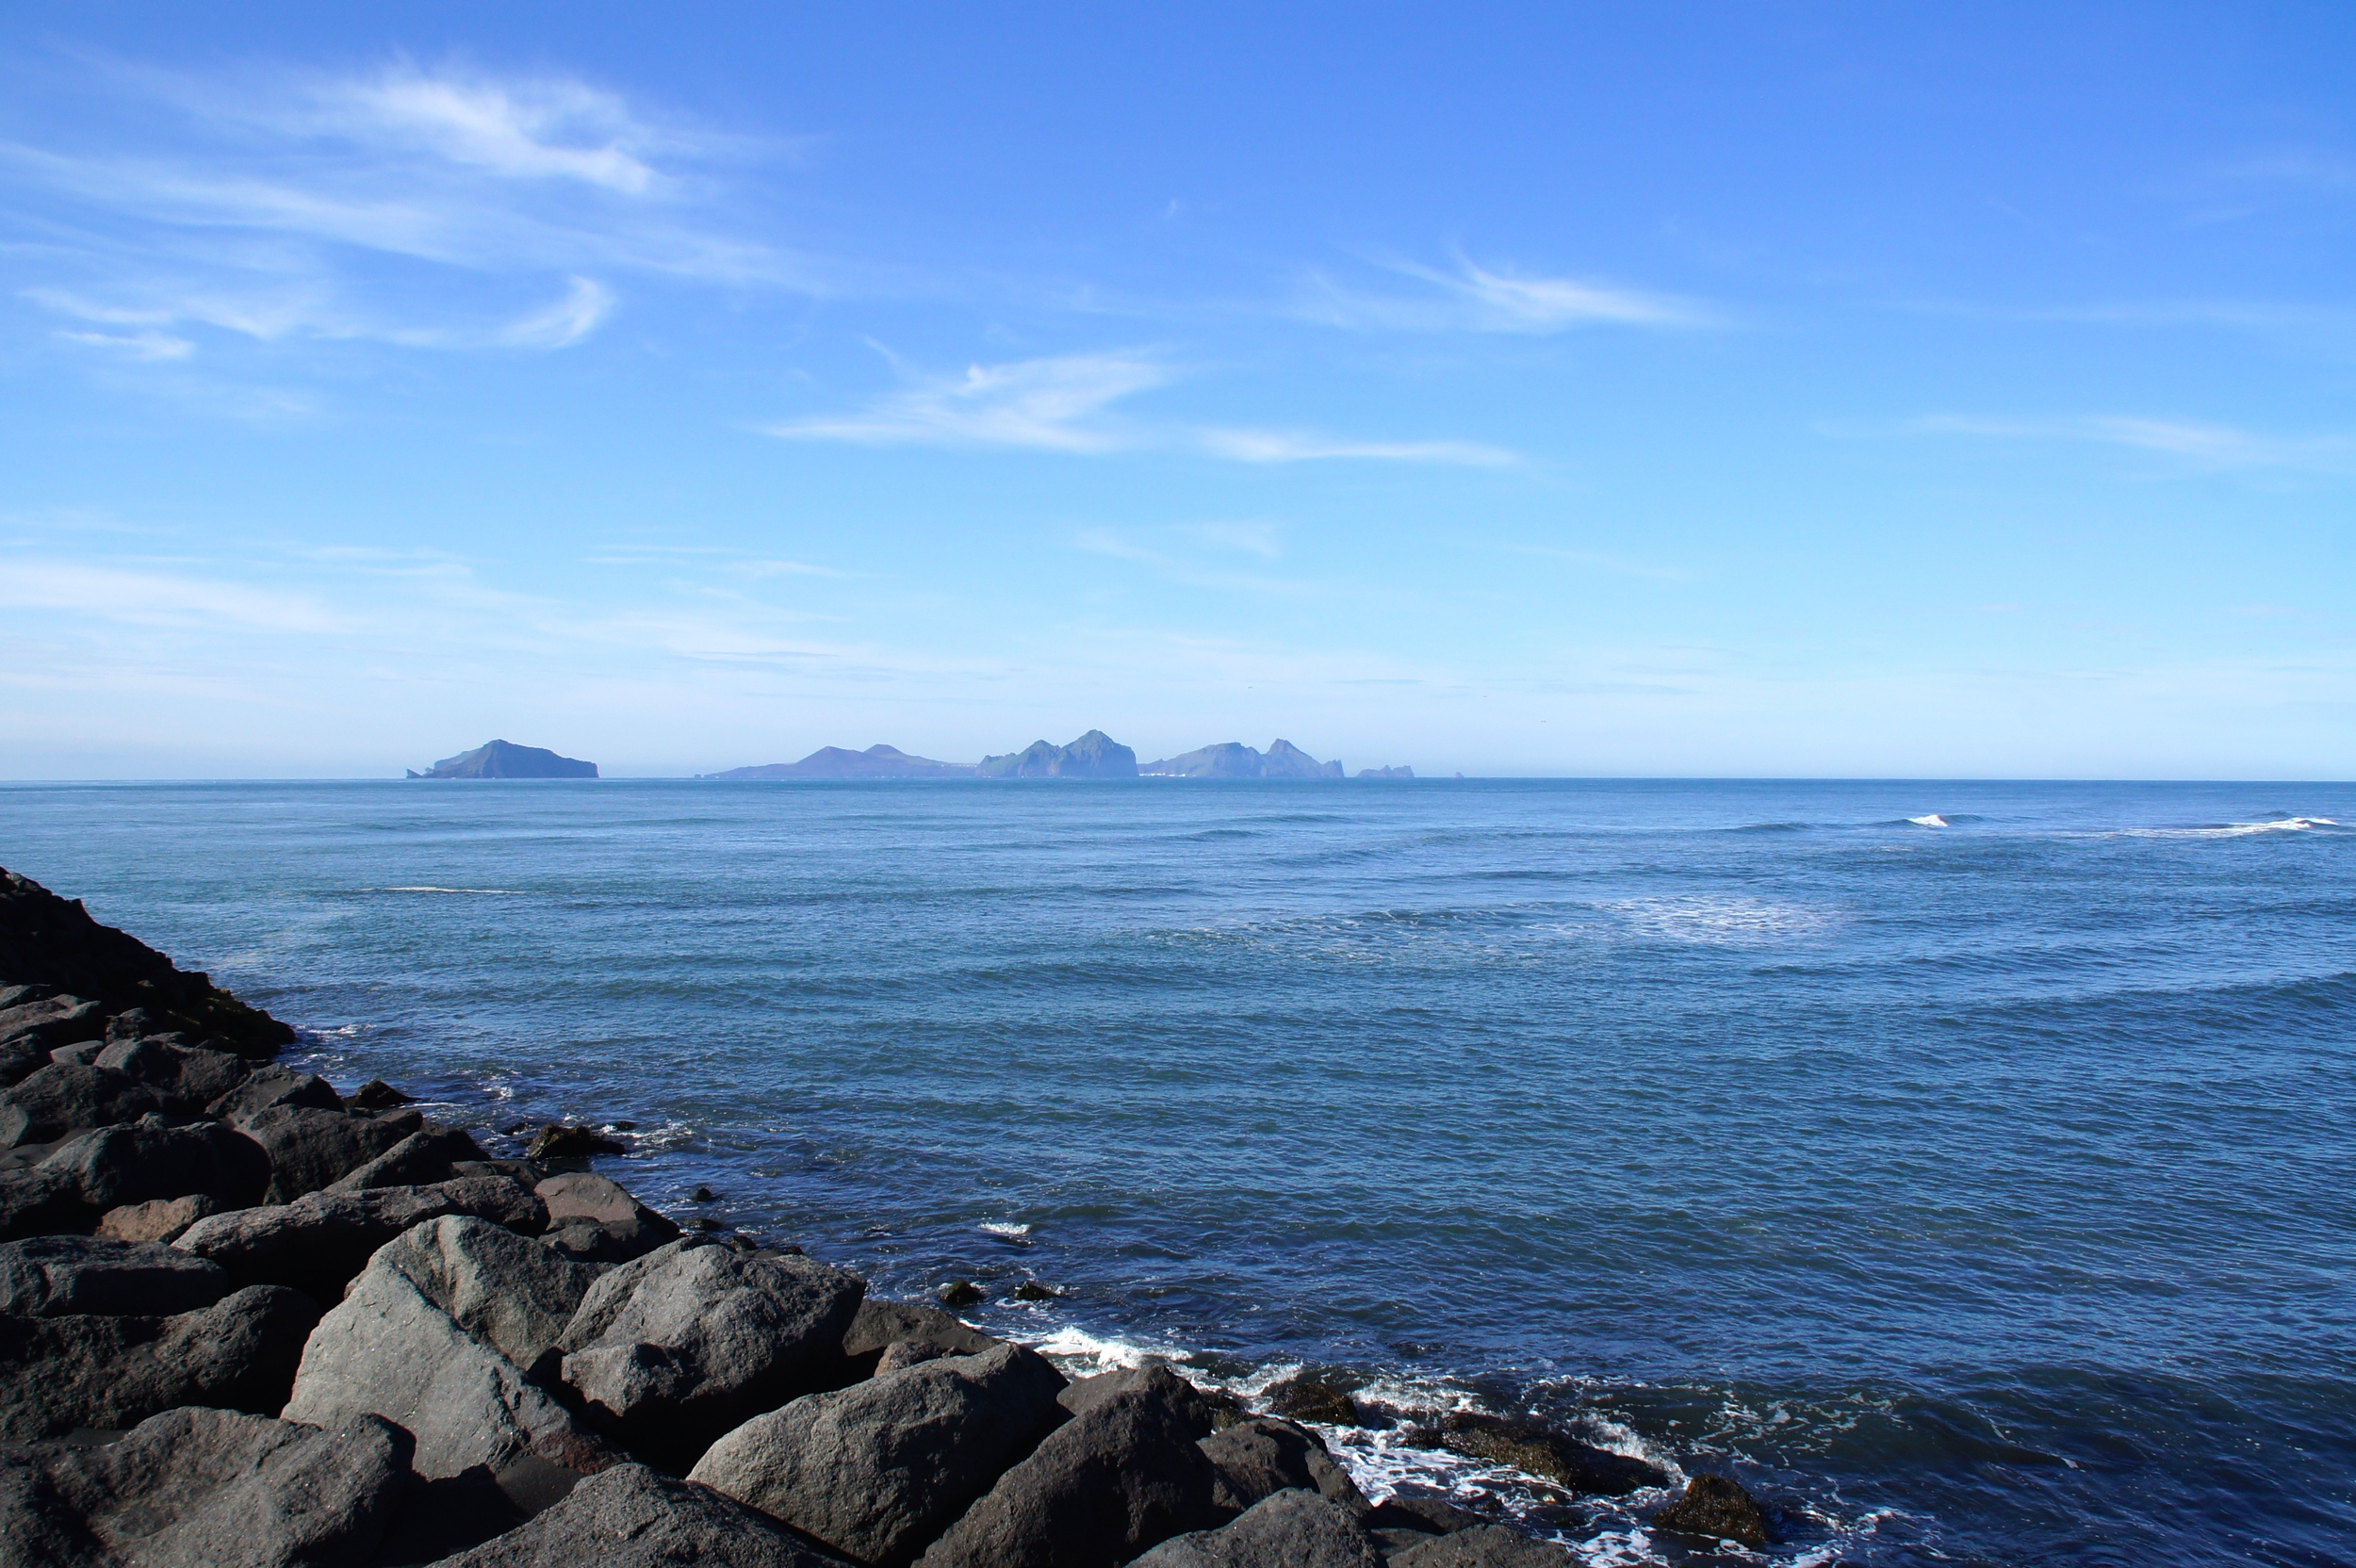 Vestmannaeyjar as seen from the shore before boarding the ferry.